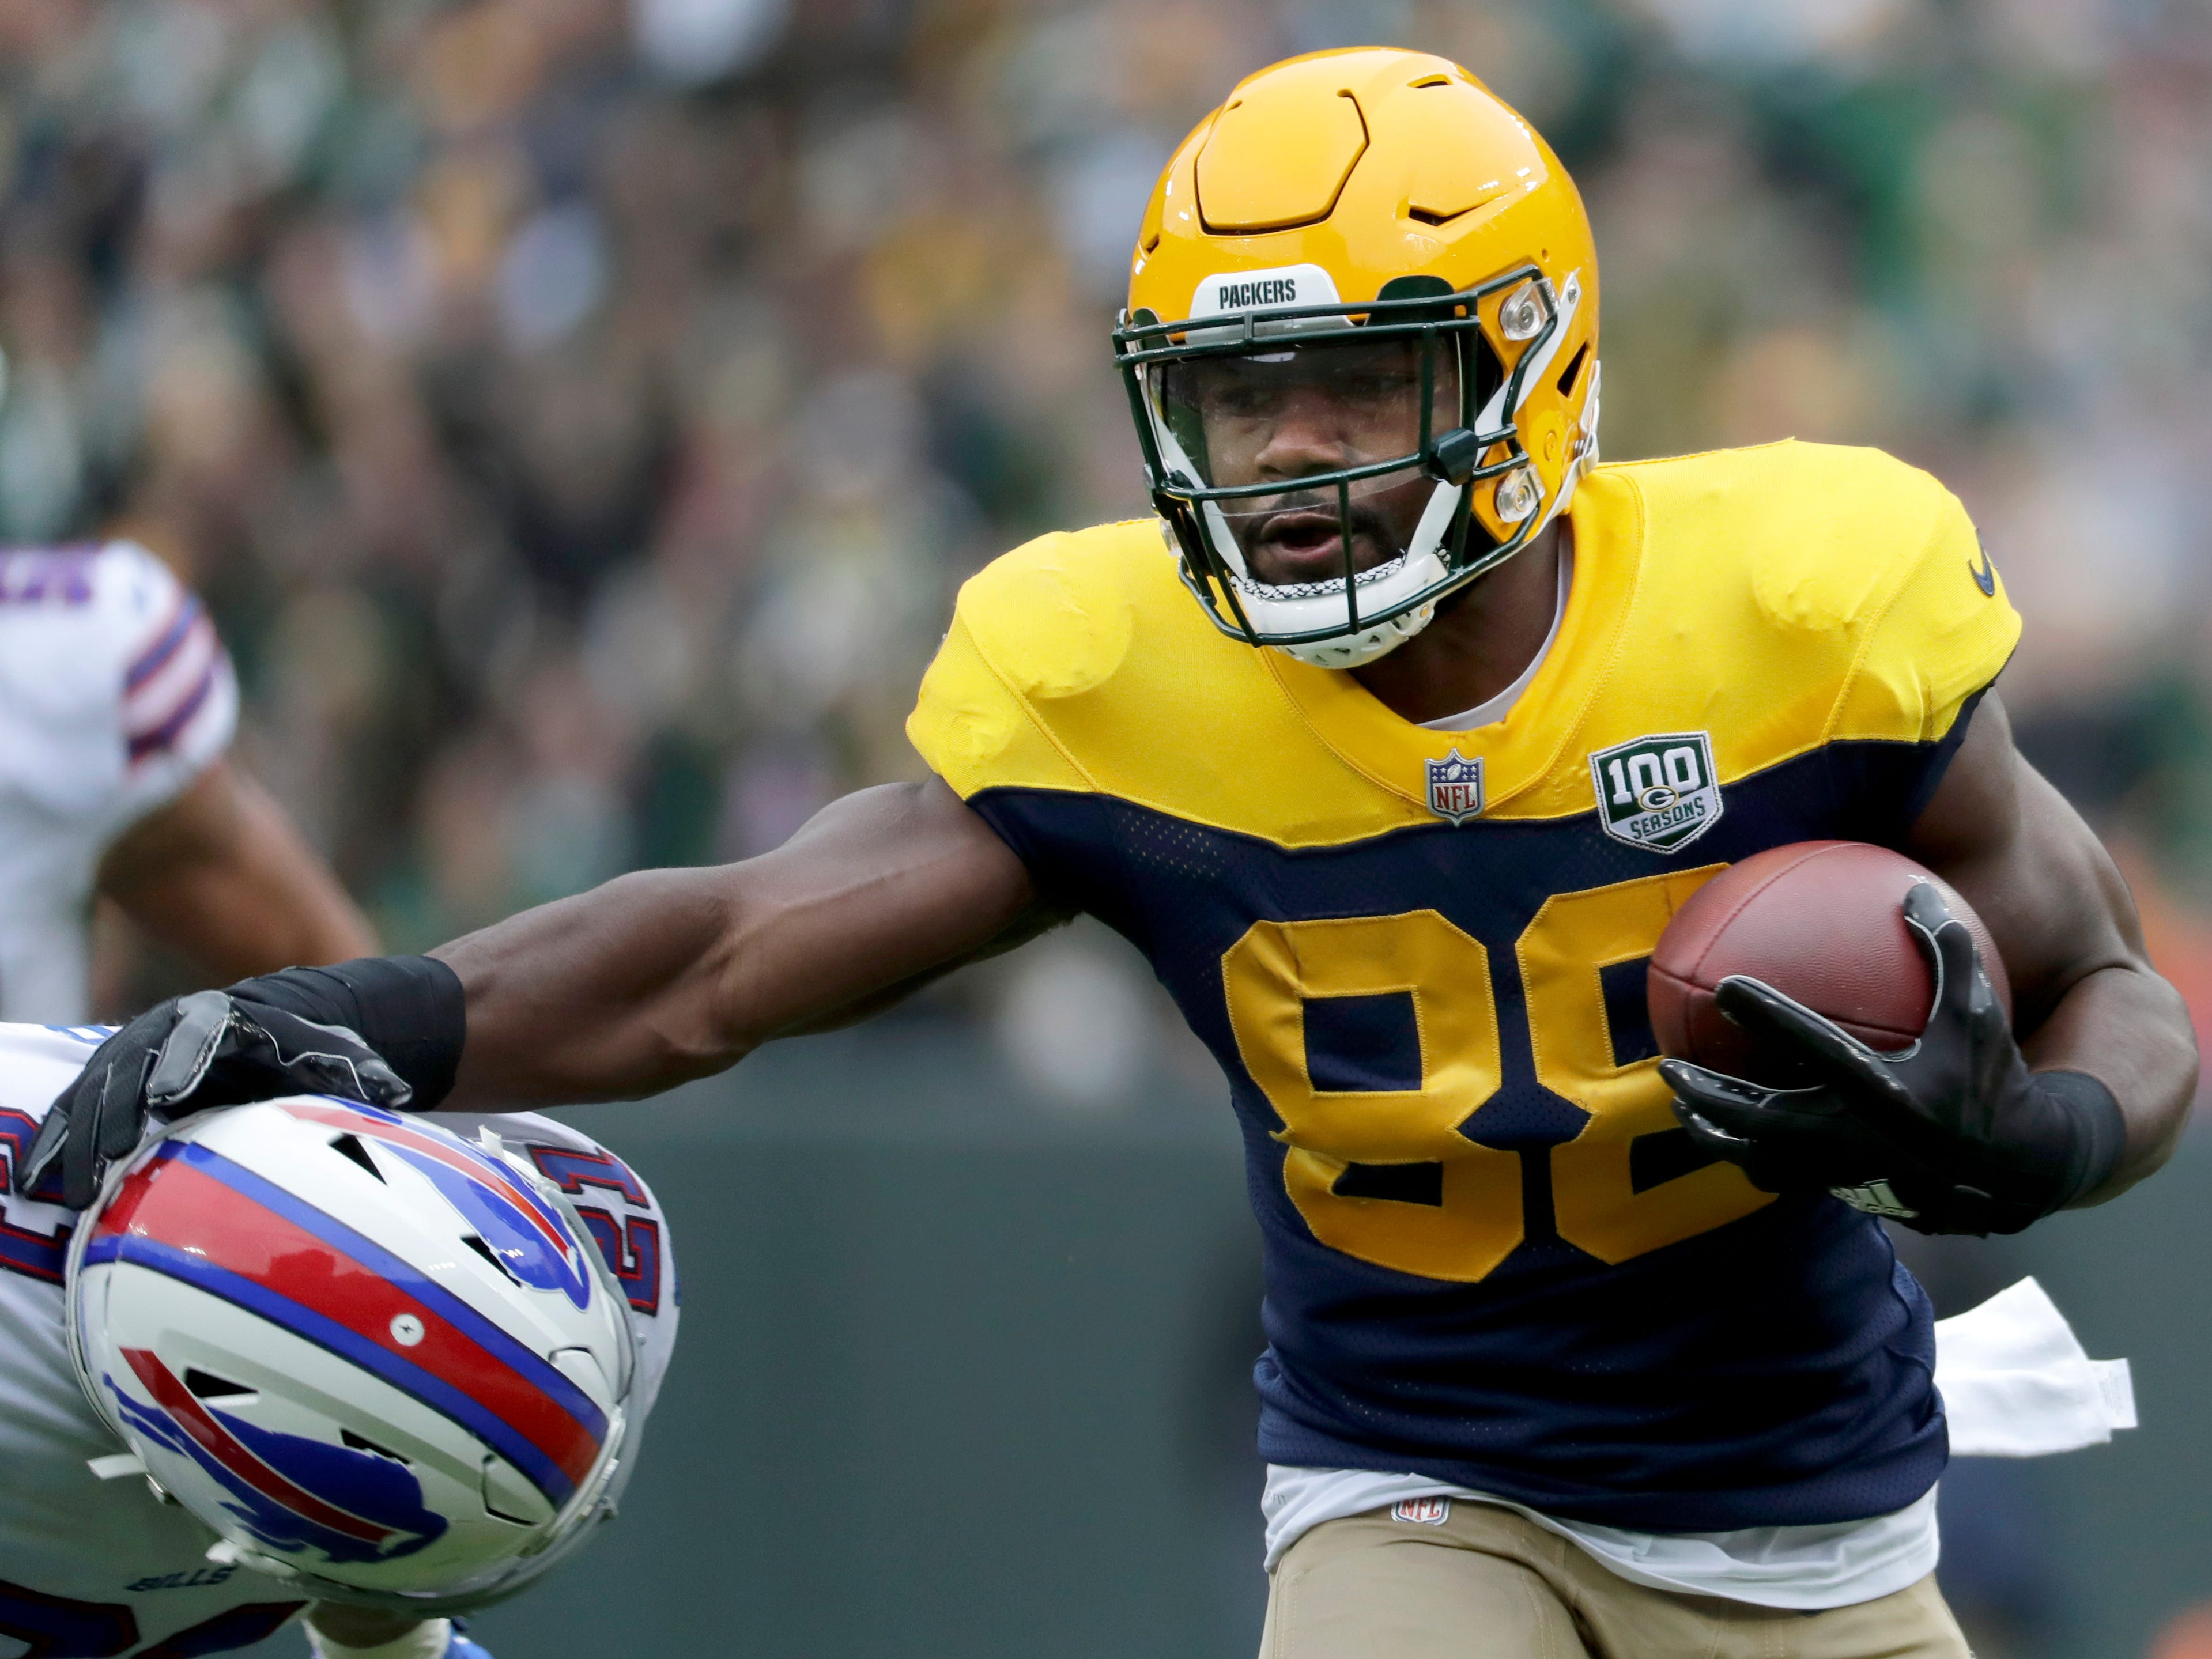 Green Bay Packers running back Ty Montgomery on a first quarter catch and run against the the Buffalo Bills on Sunday, September 30, 2018, at Lambeau Field in Green Bay, Wis. 